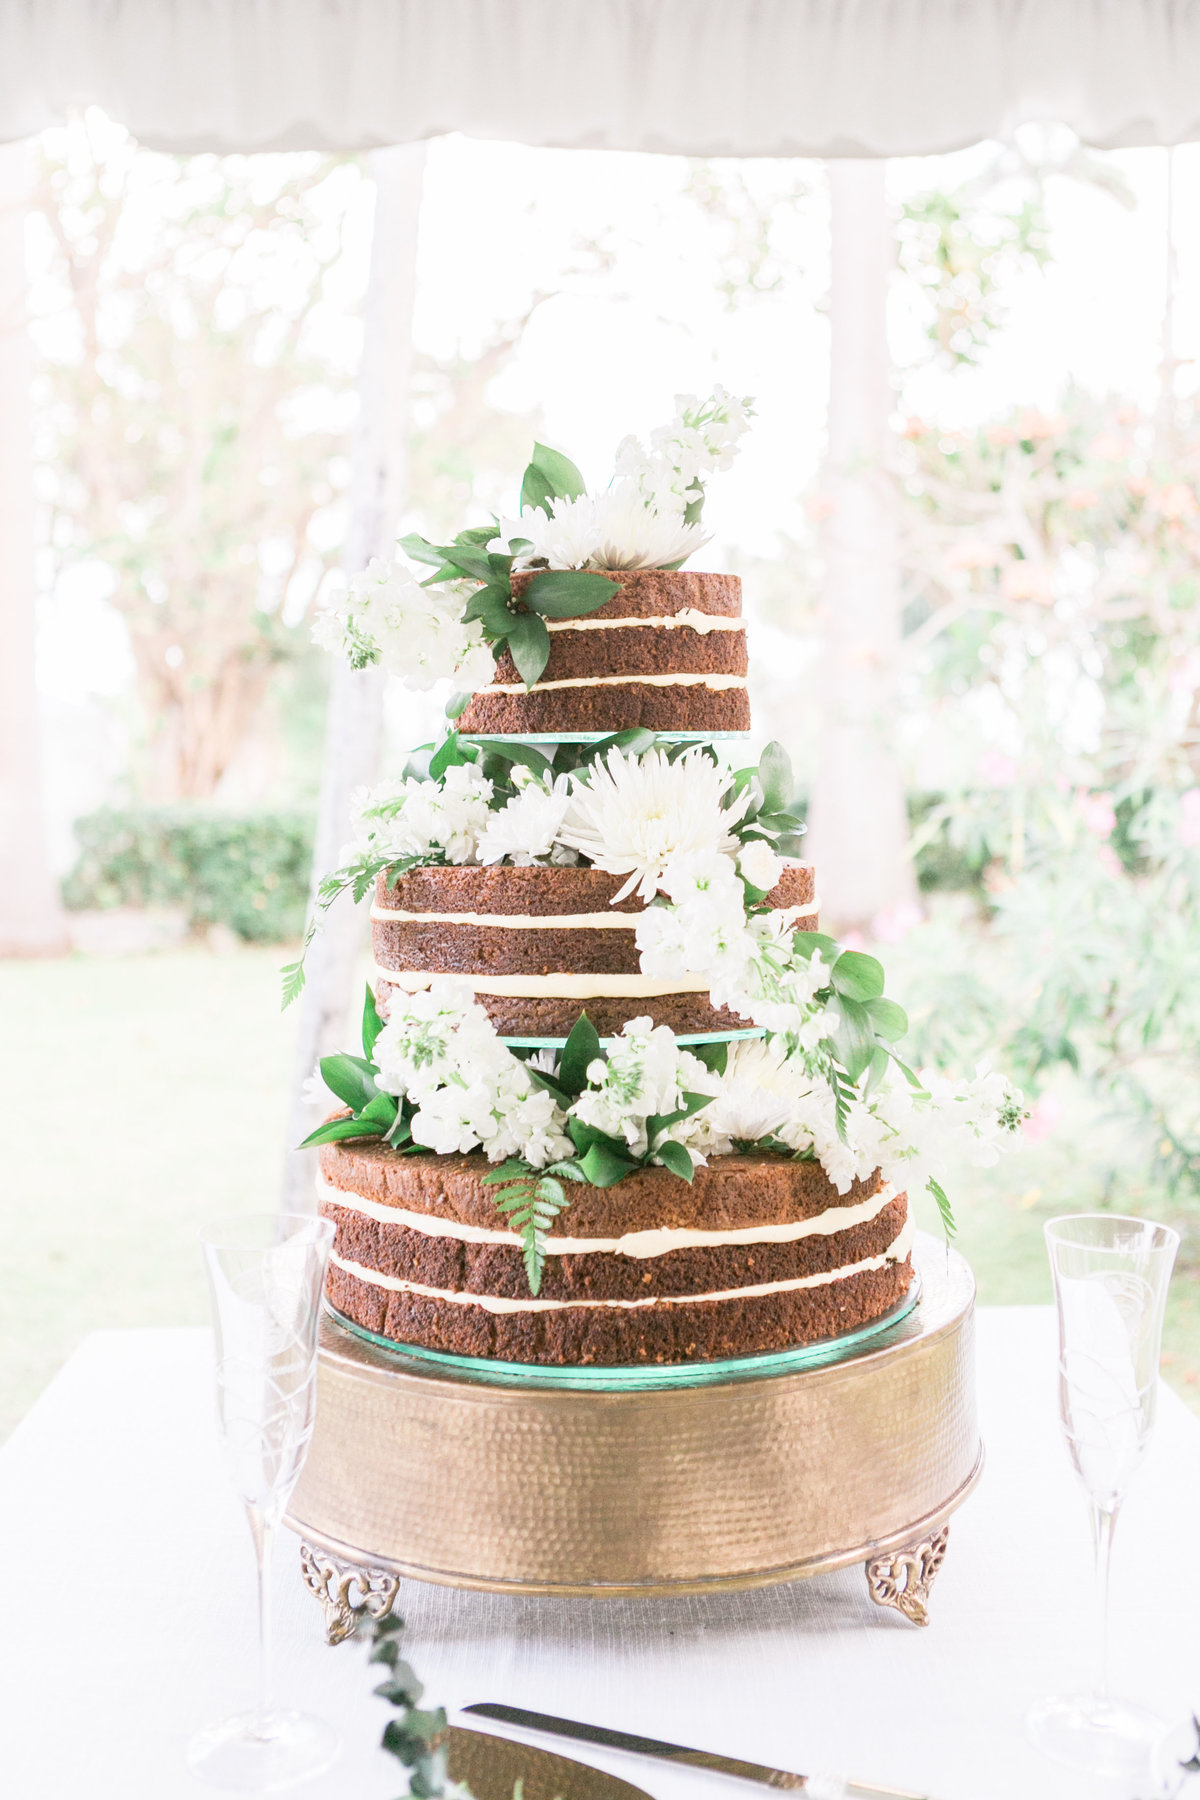 Naked carrot wedding cake at destination wedding Barbados